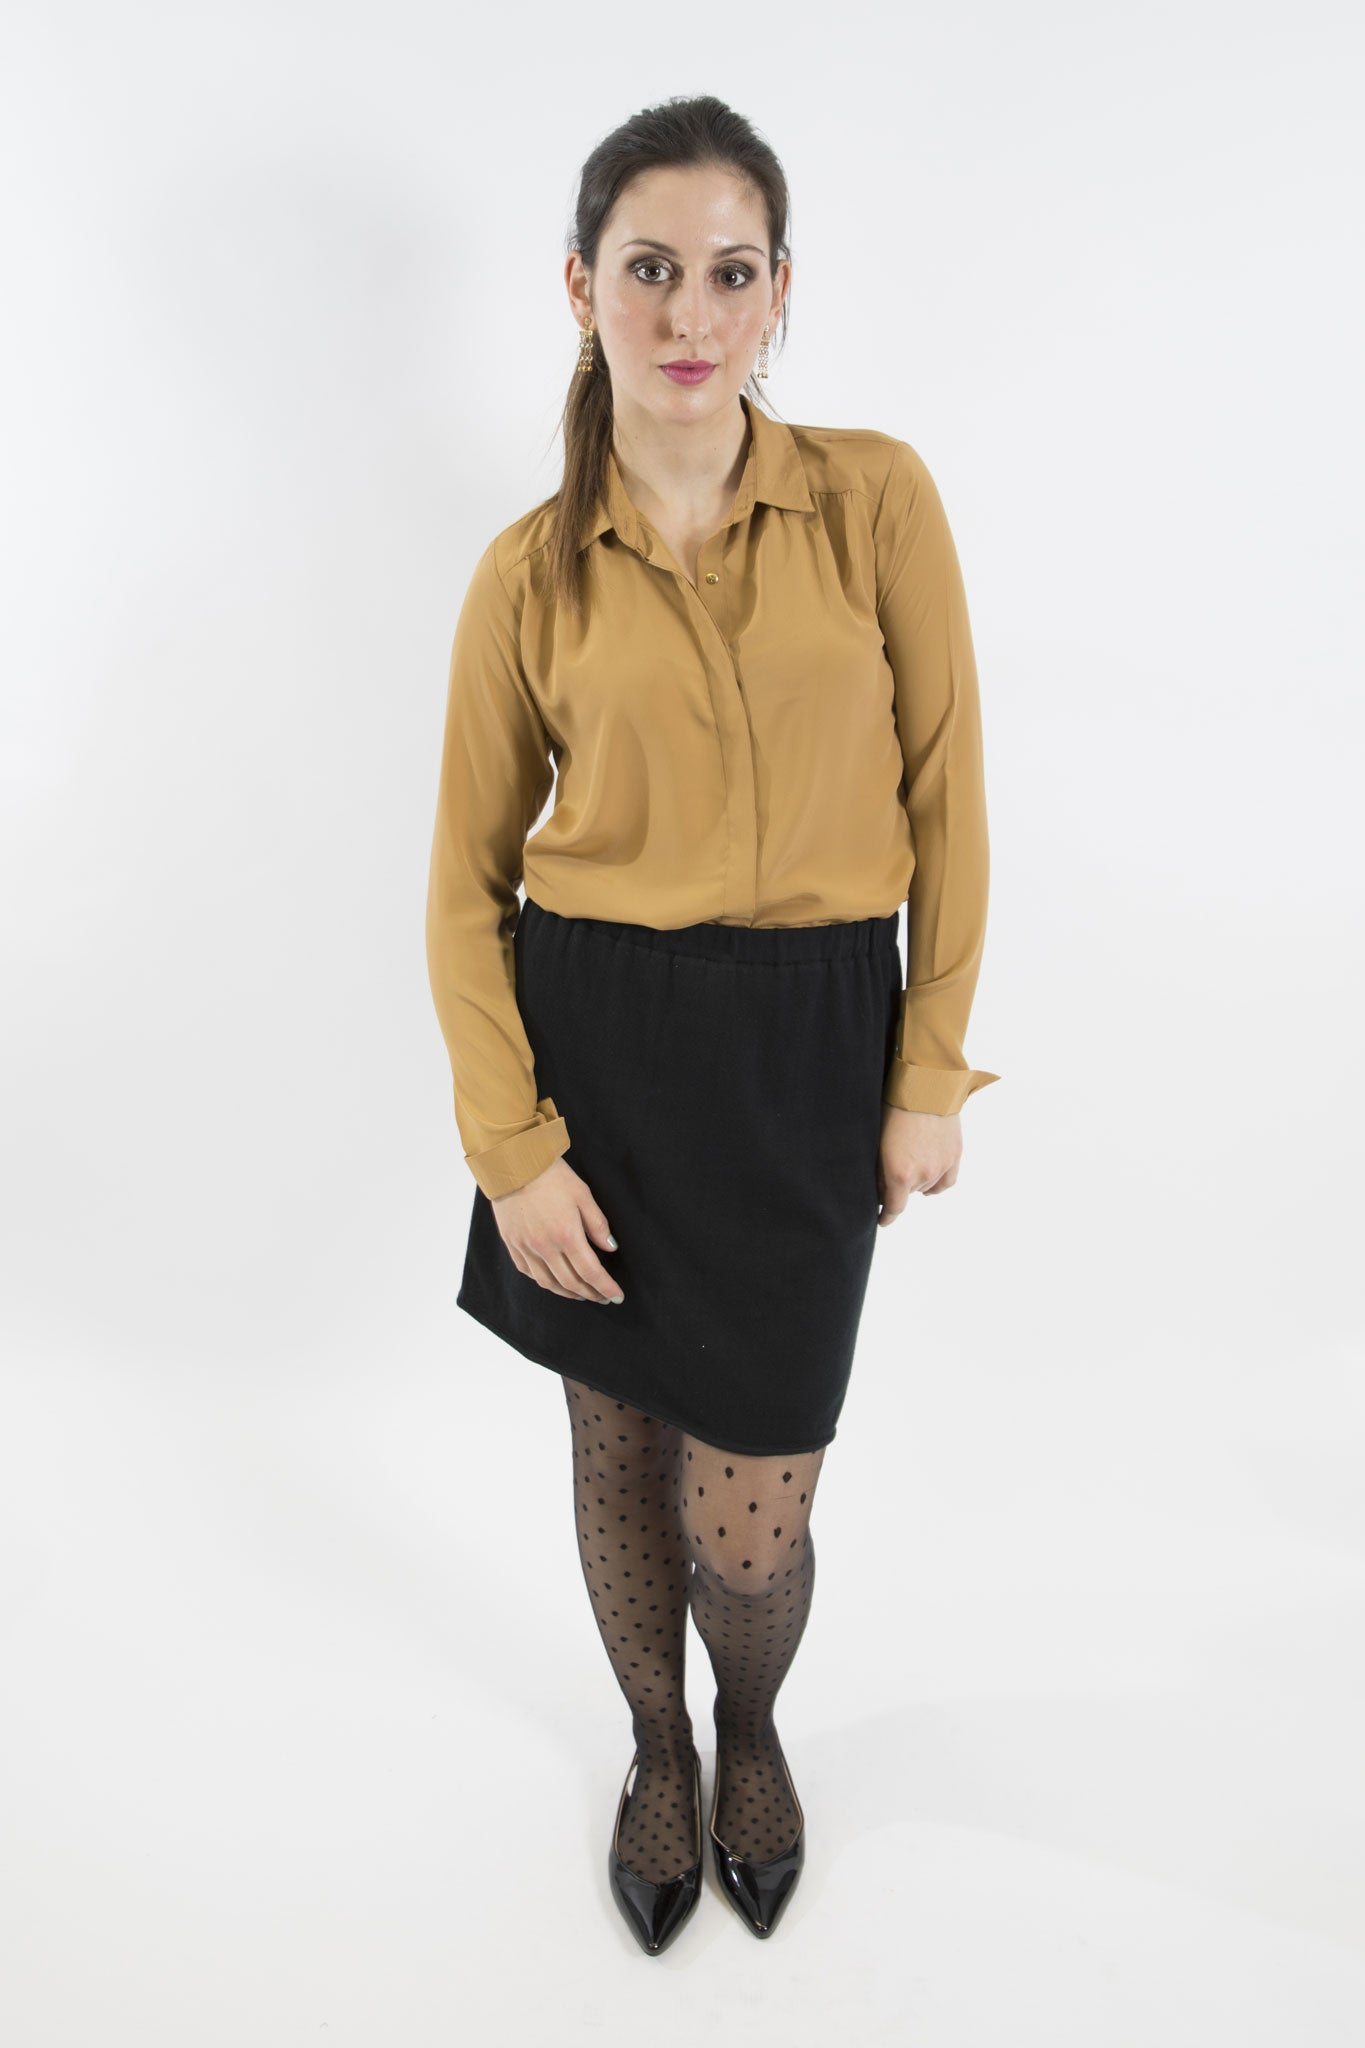 Sketch London Caramel Gold French Crepe full sleeve Shirt work office smart casual ethical sustainable women